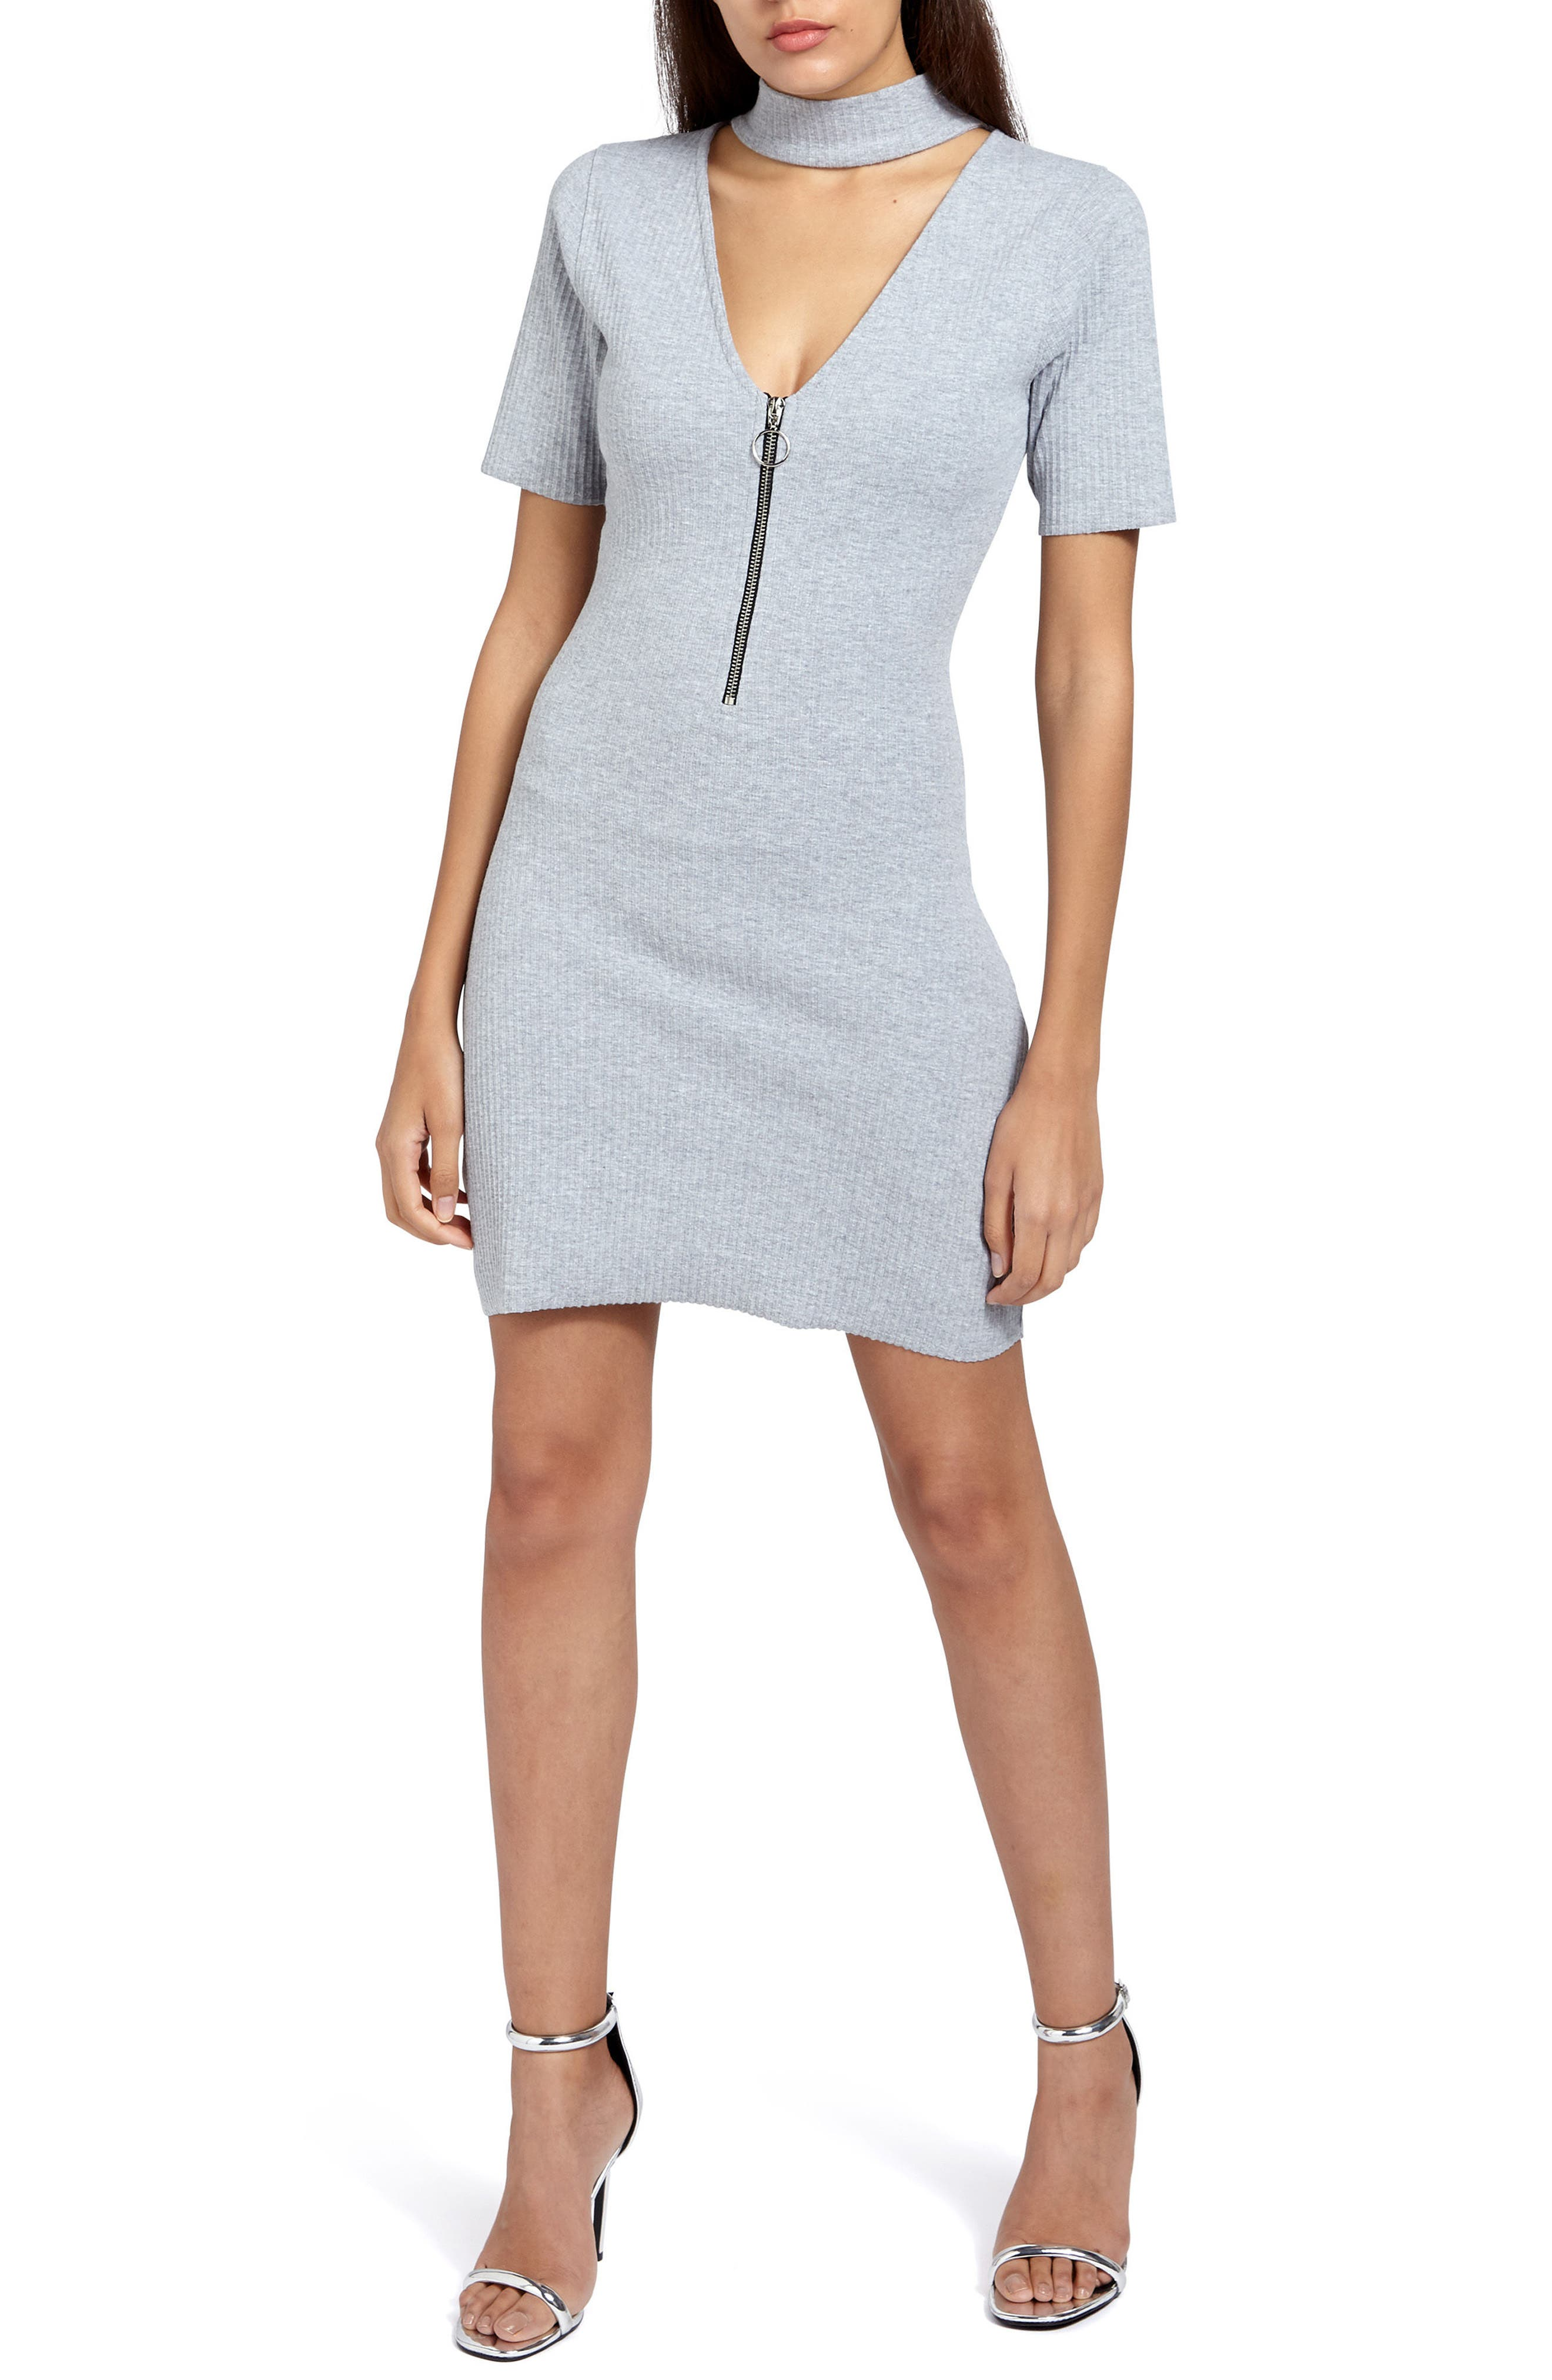 Main Image - Missguided Choker Zip Body-Con Dress